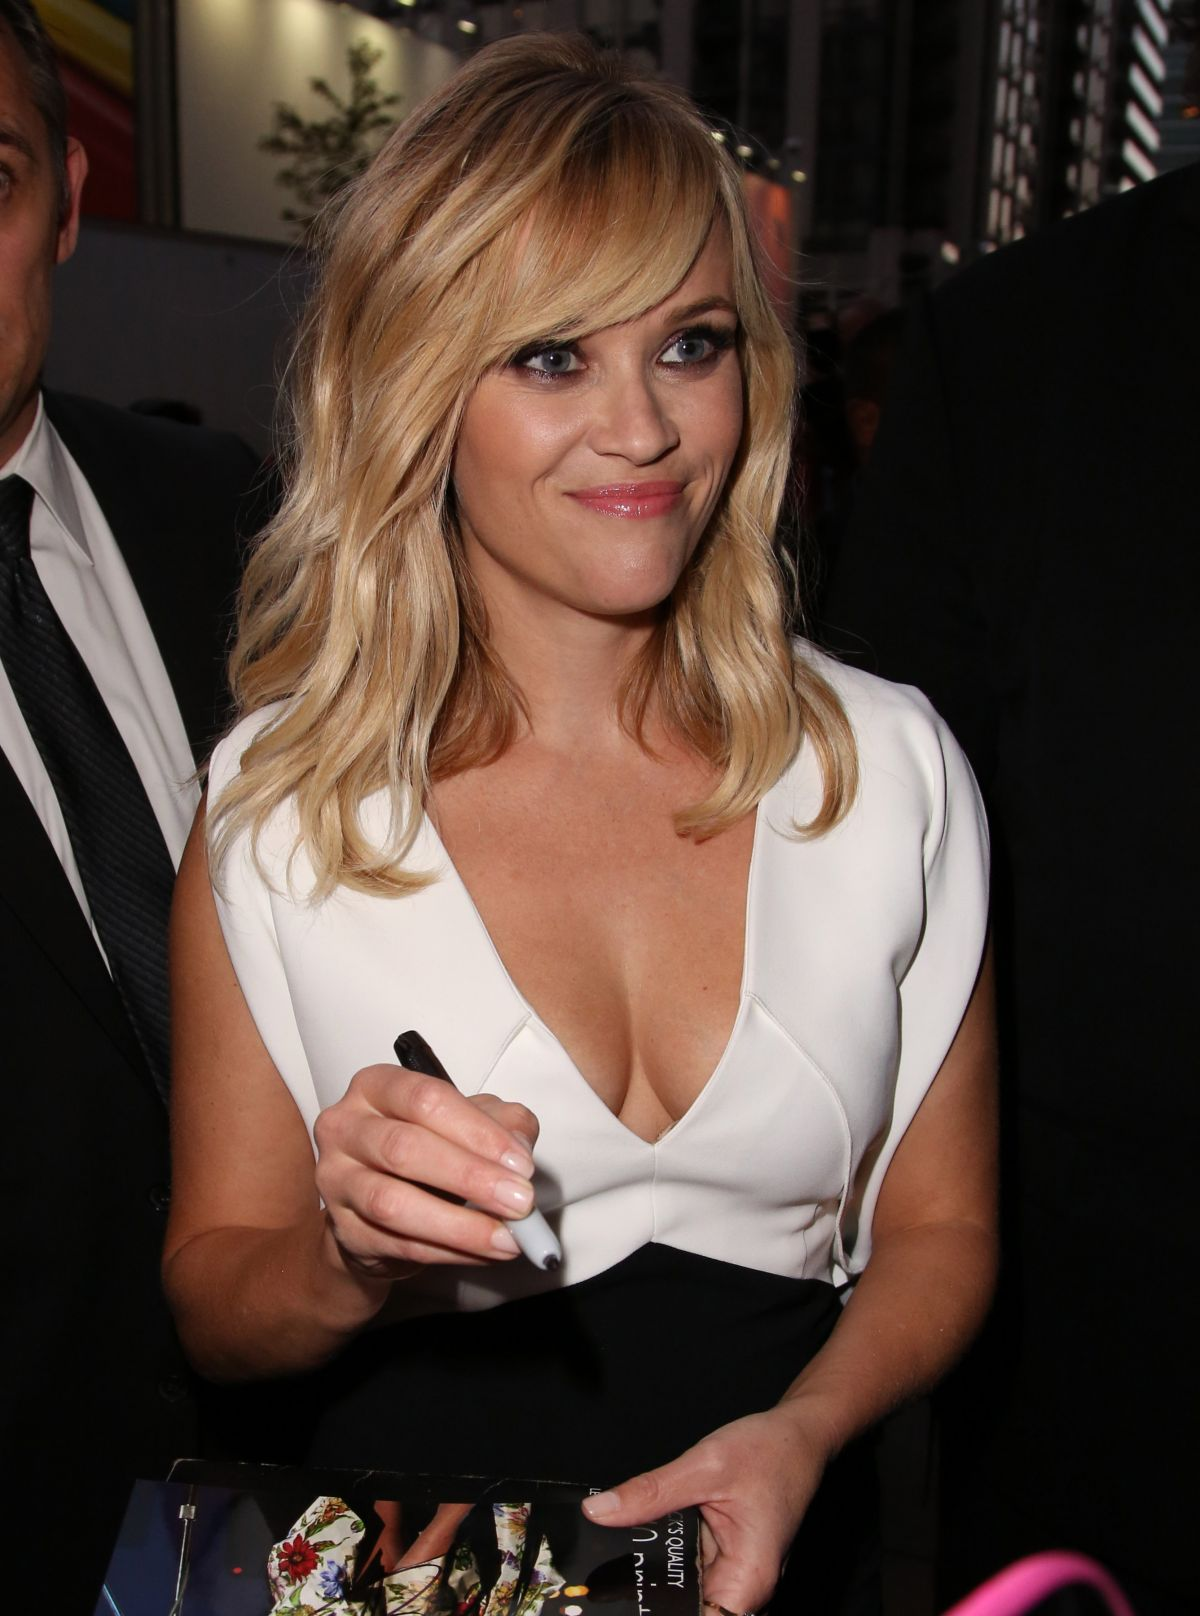 Reese Witherspoon Profile  Bio  Hot Pictures  Hot Photos